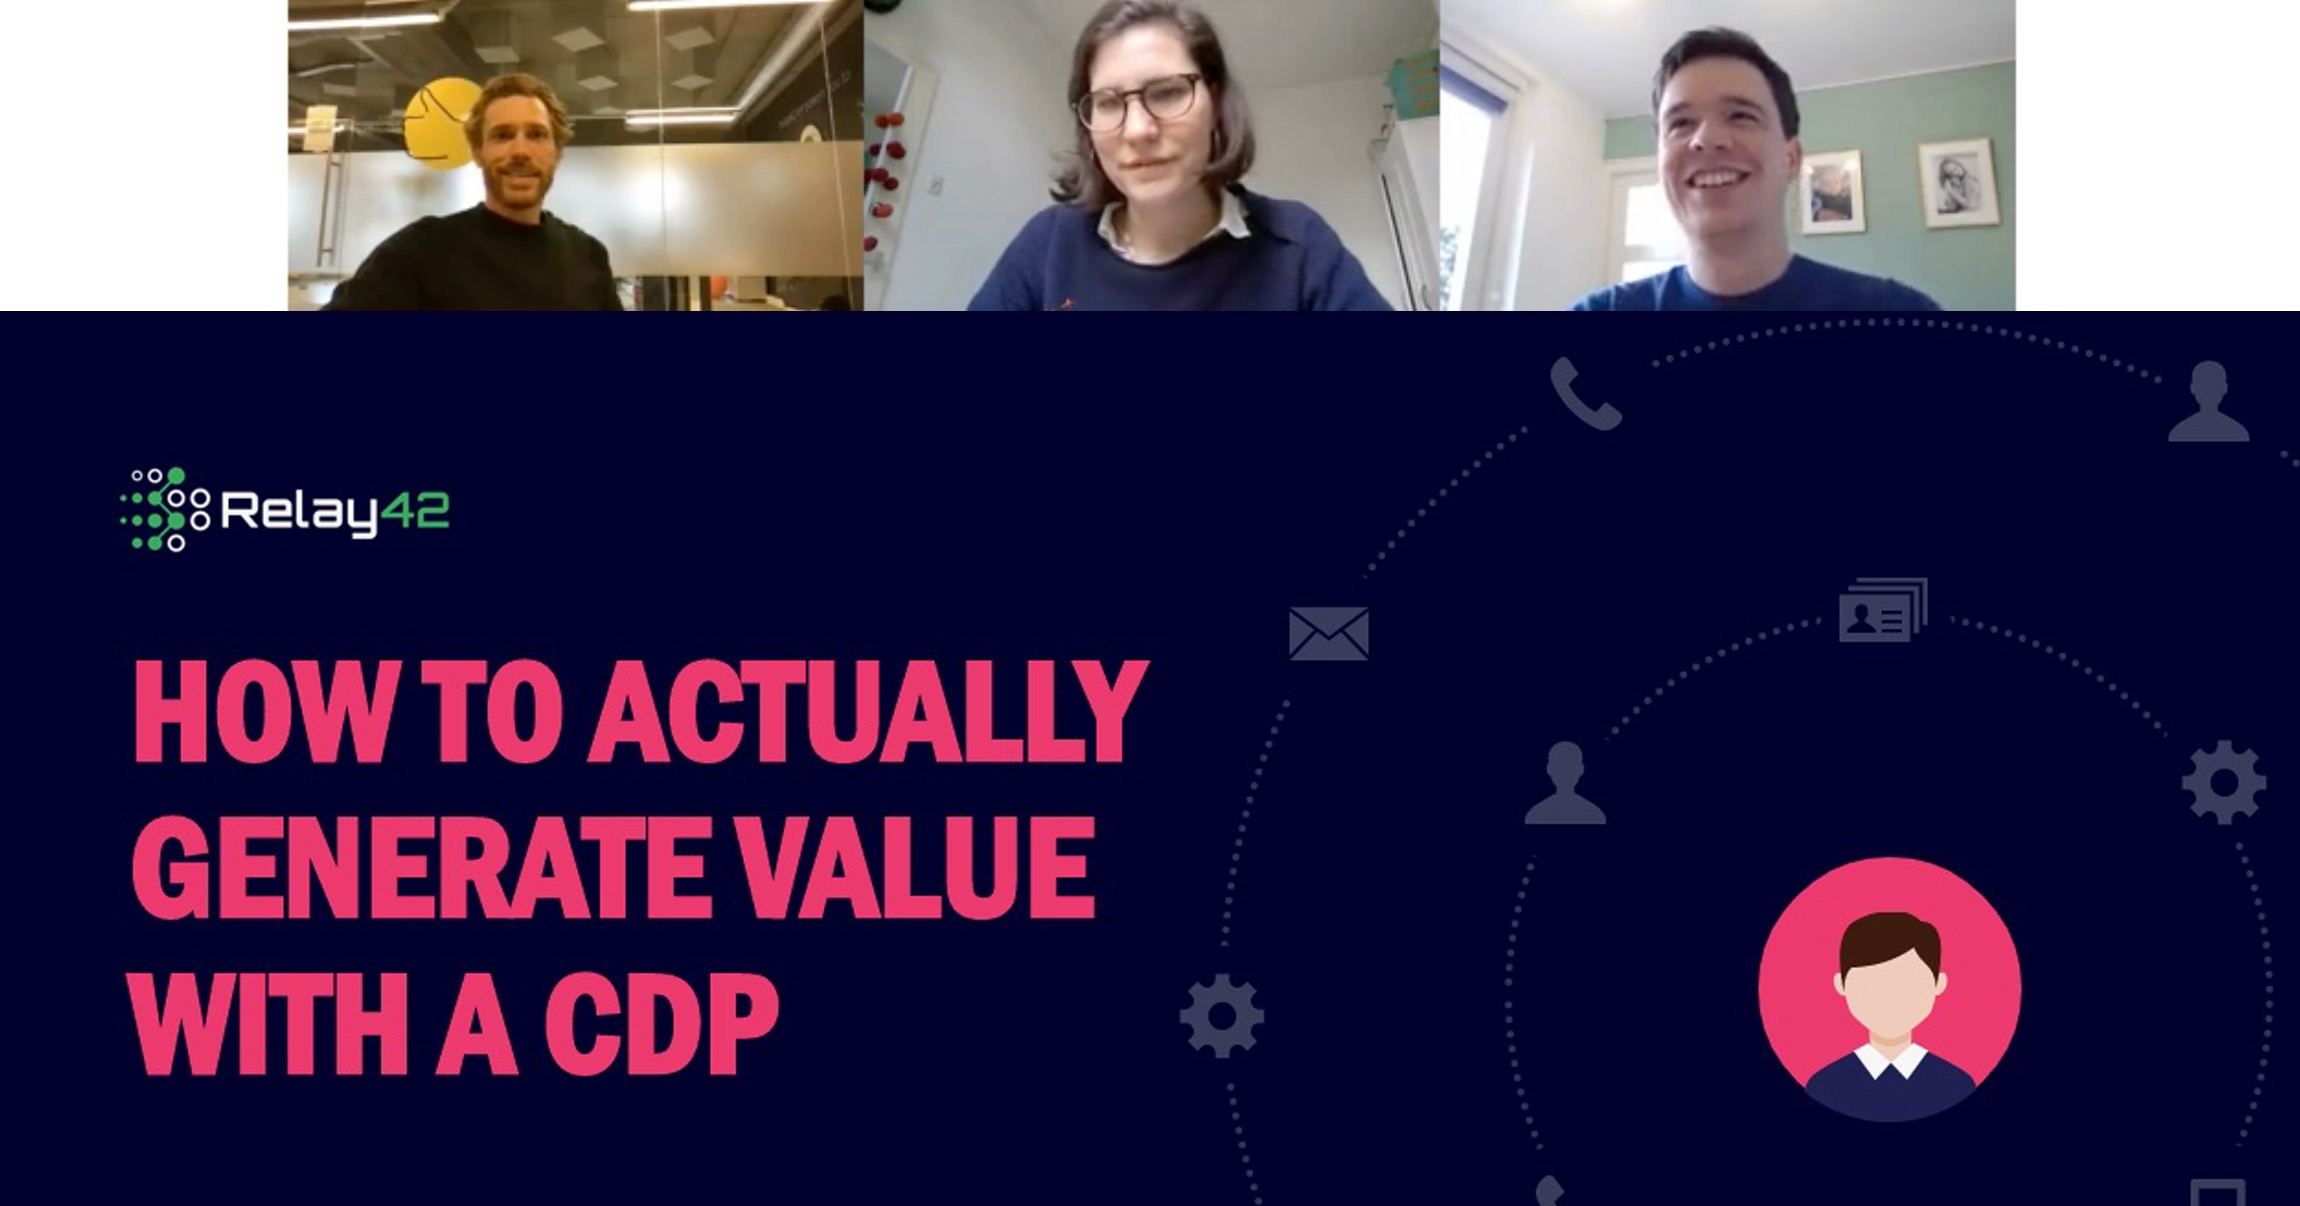 Video: On-Demand Webinar: How to Actually Generate Value with a CDP